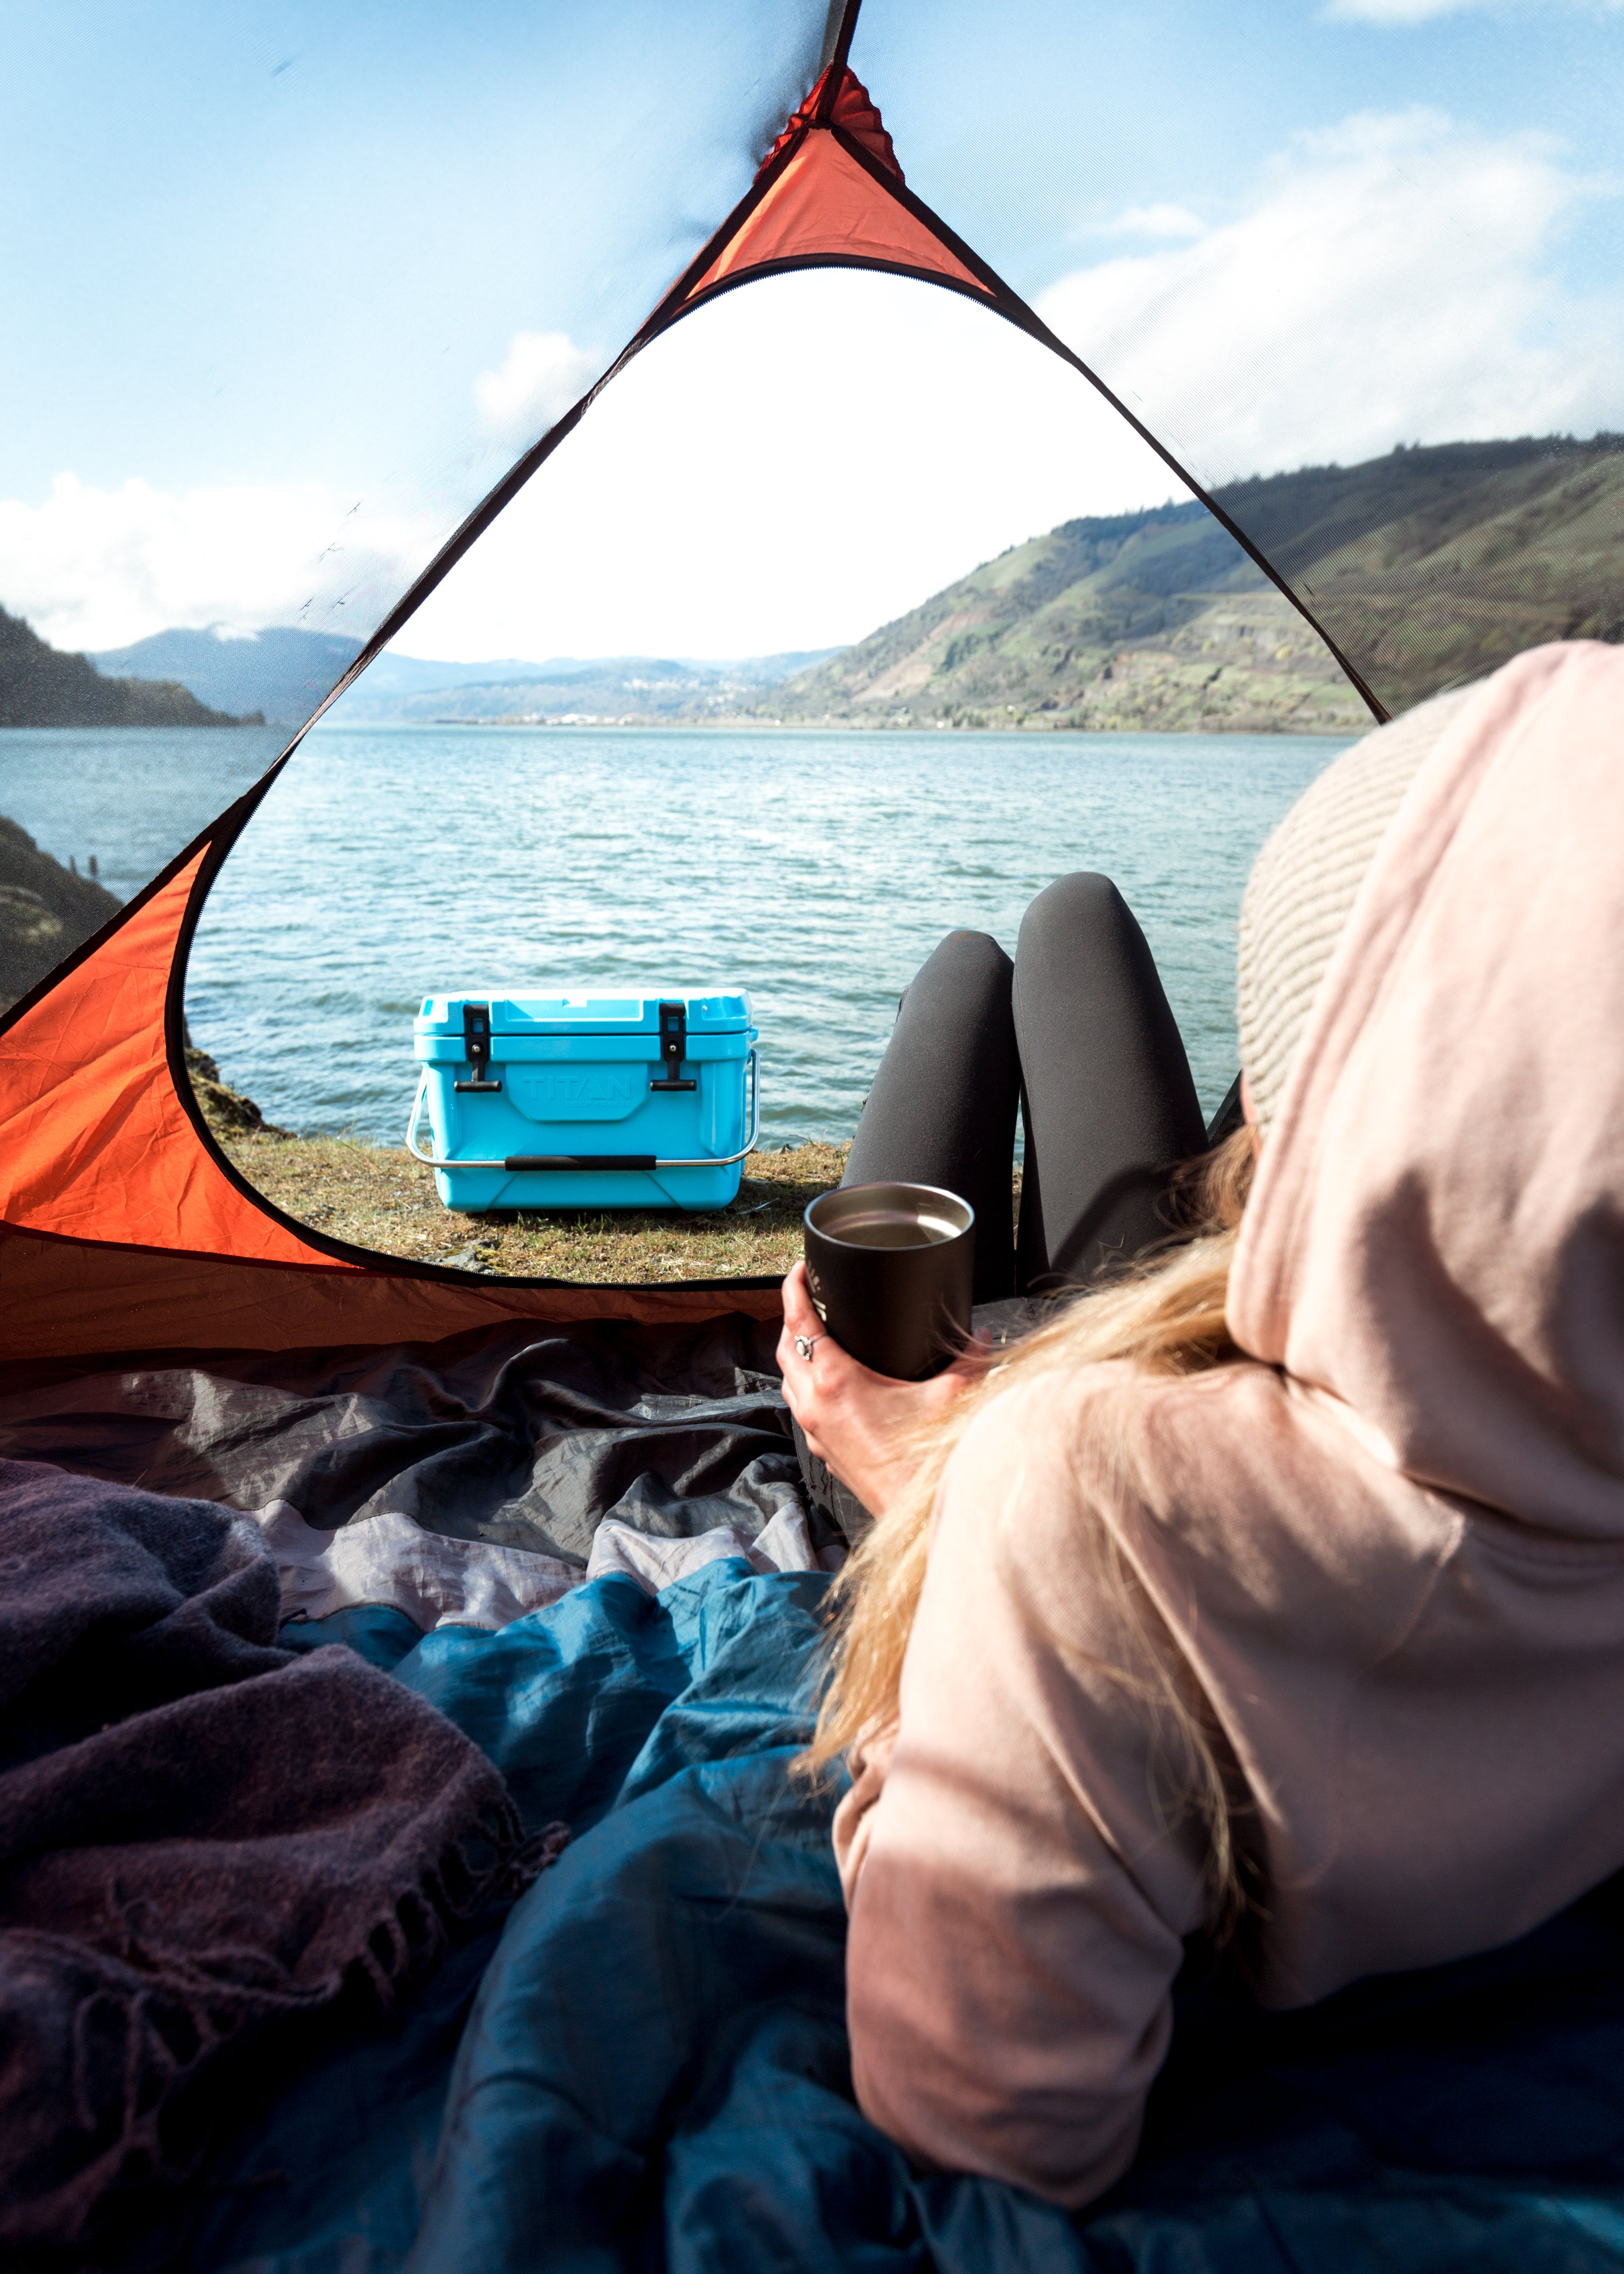 Camping with Arctic Zone - carrying the cooler past the tent - chilling in the tent with a drink overlooking a lake - Best coolers for camping